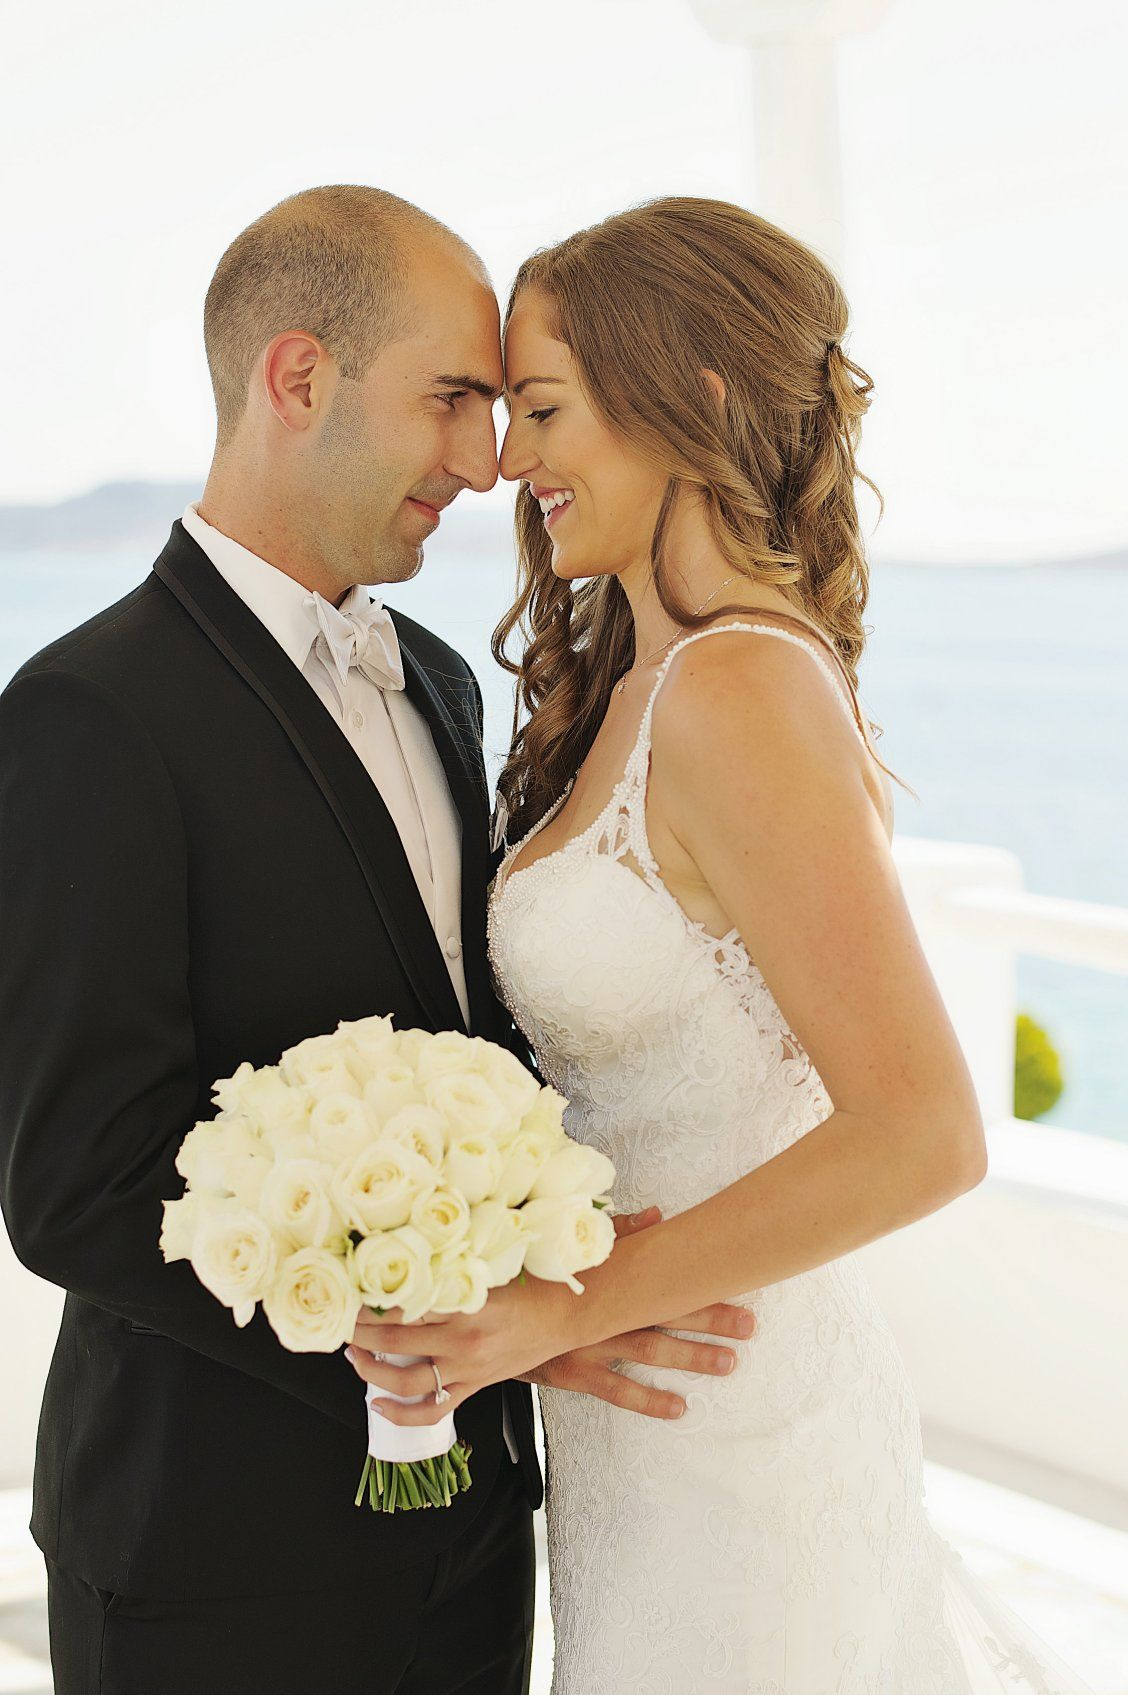 Designer wedding gown lace wedding dresses lace weddings and